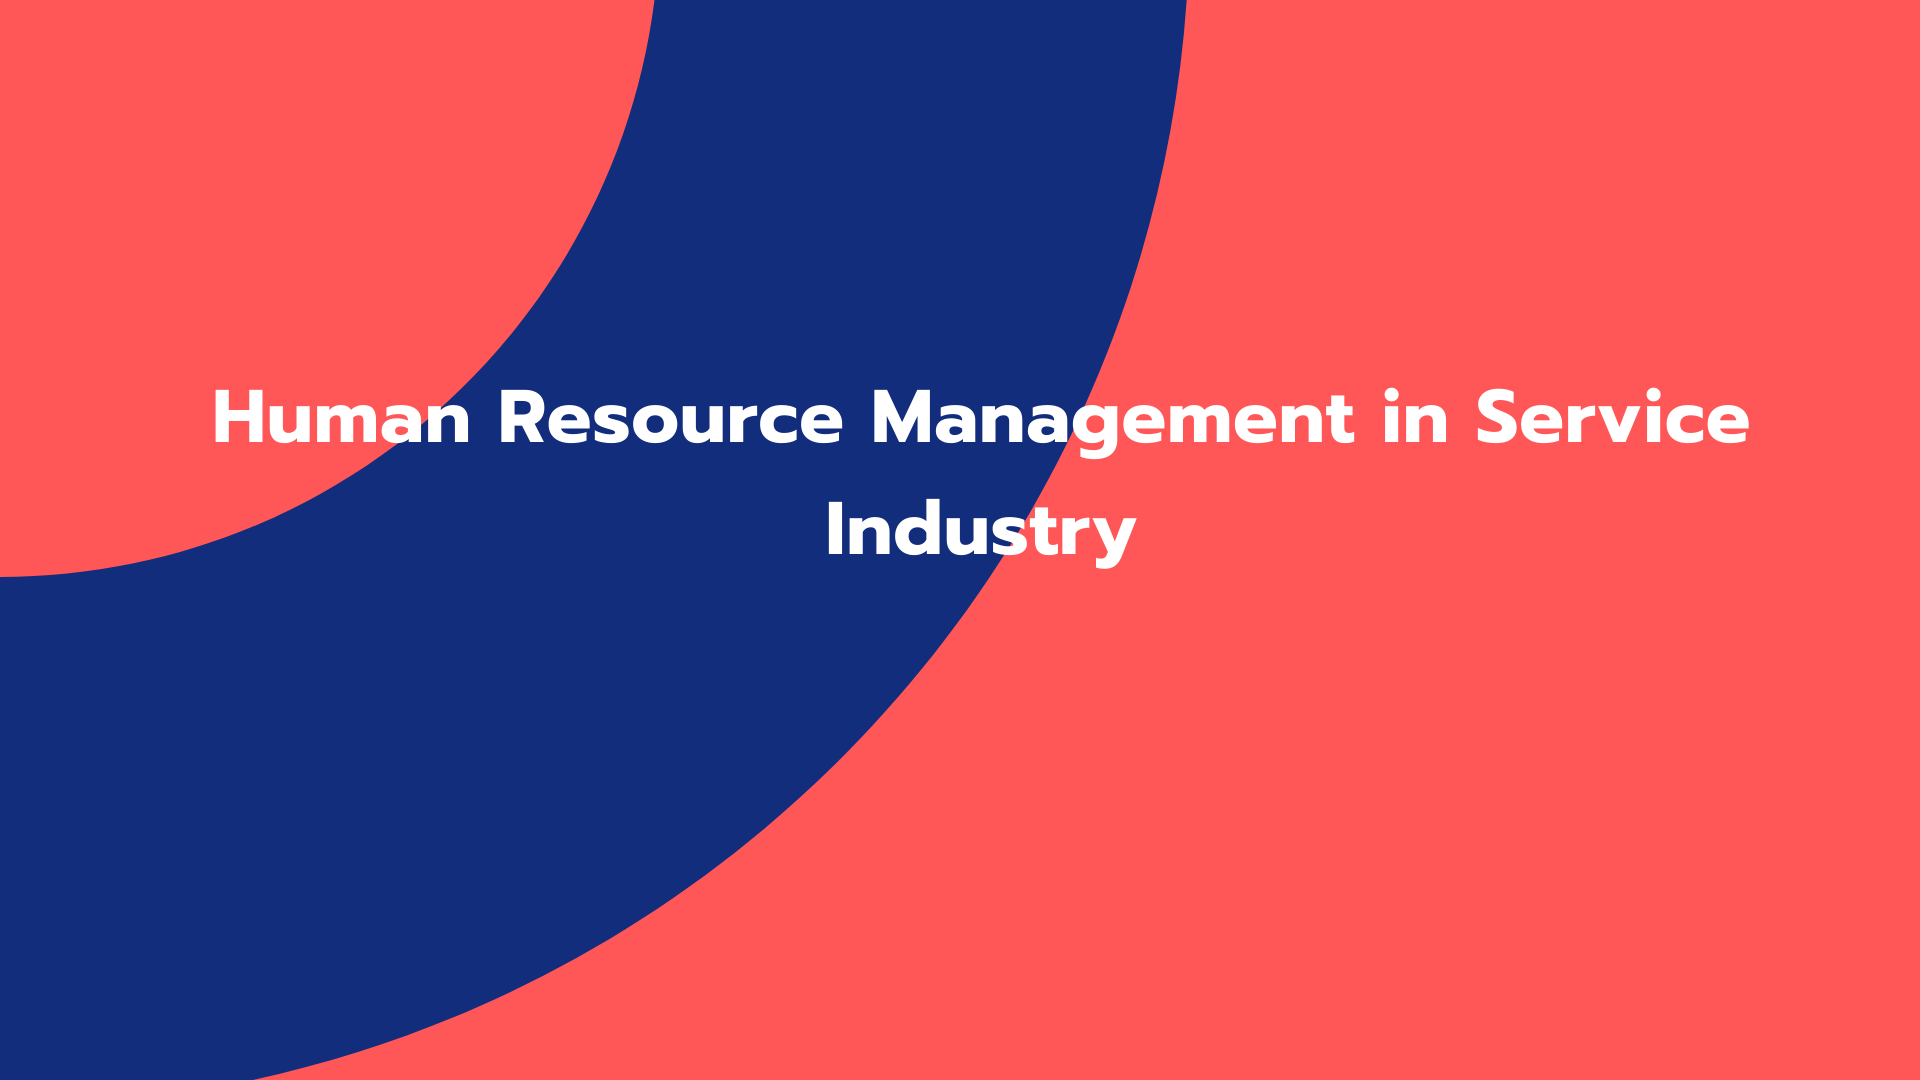 Human Resource Management in Service Industry